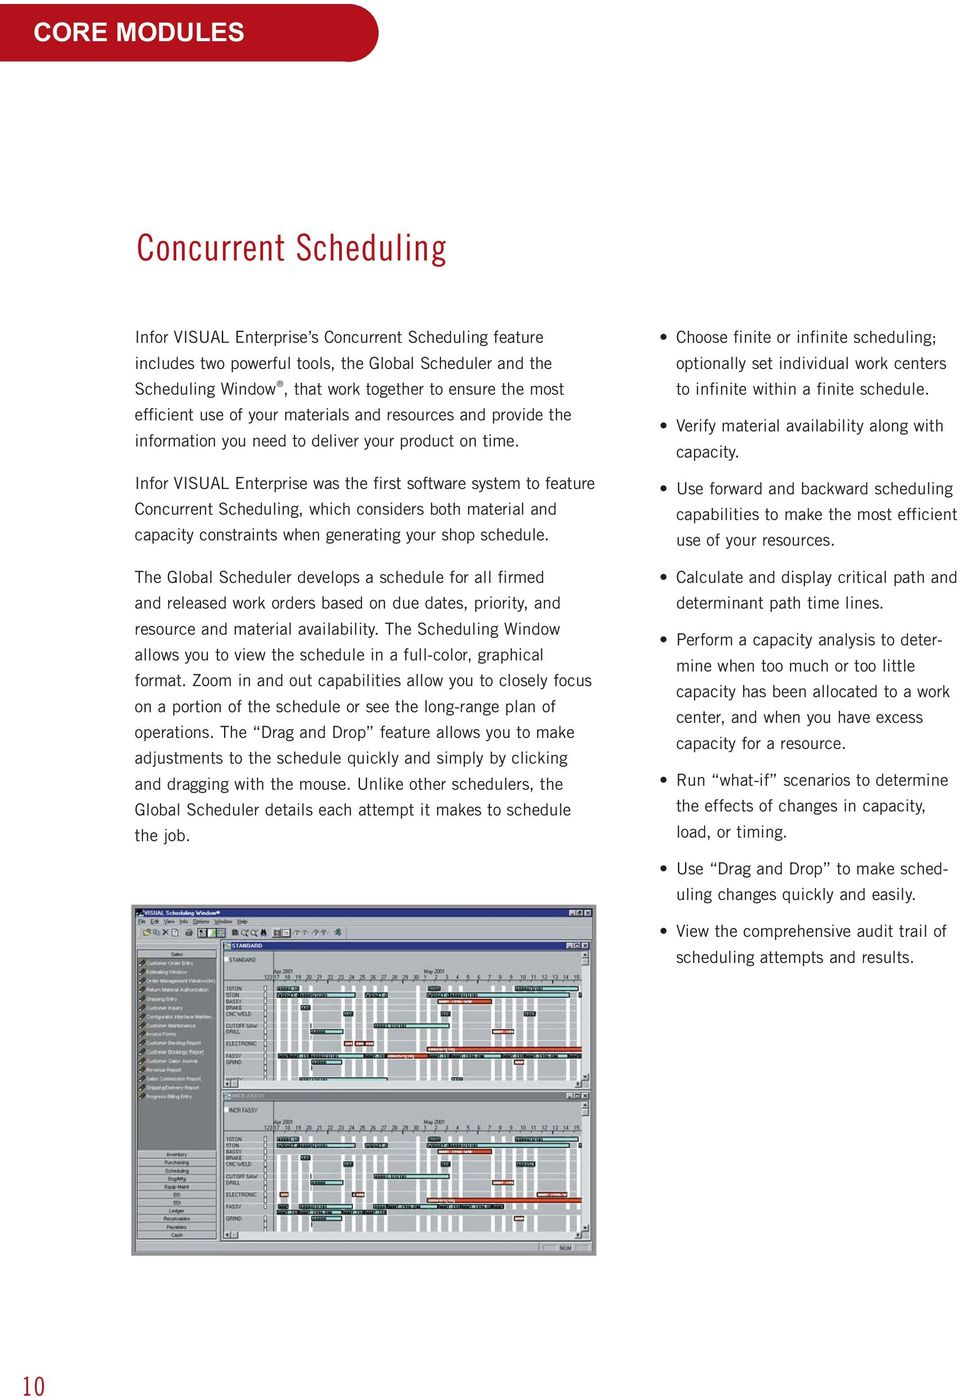 Infor VISUAL Enterprise was the first software system to feature Concurrent Scheduling, which considers both material and capacity constraints when generating your shop schedule.